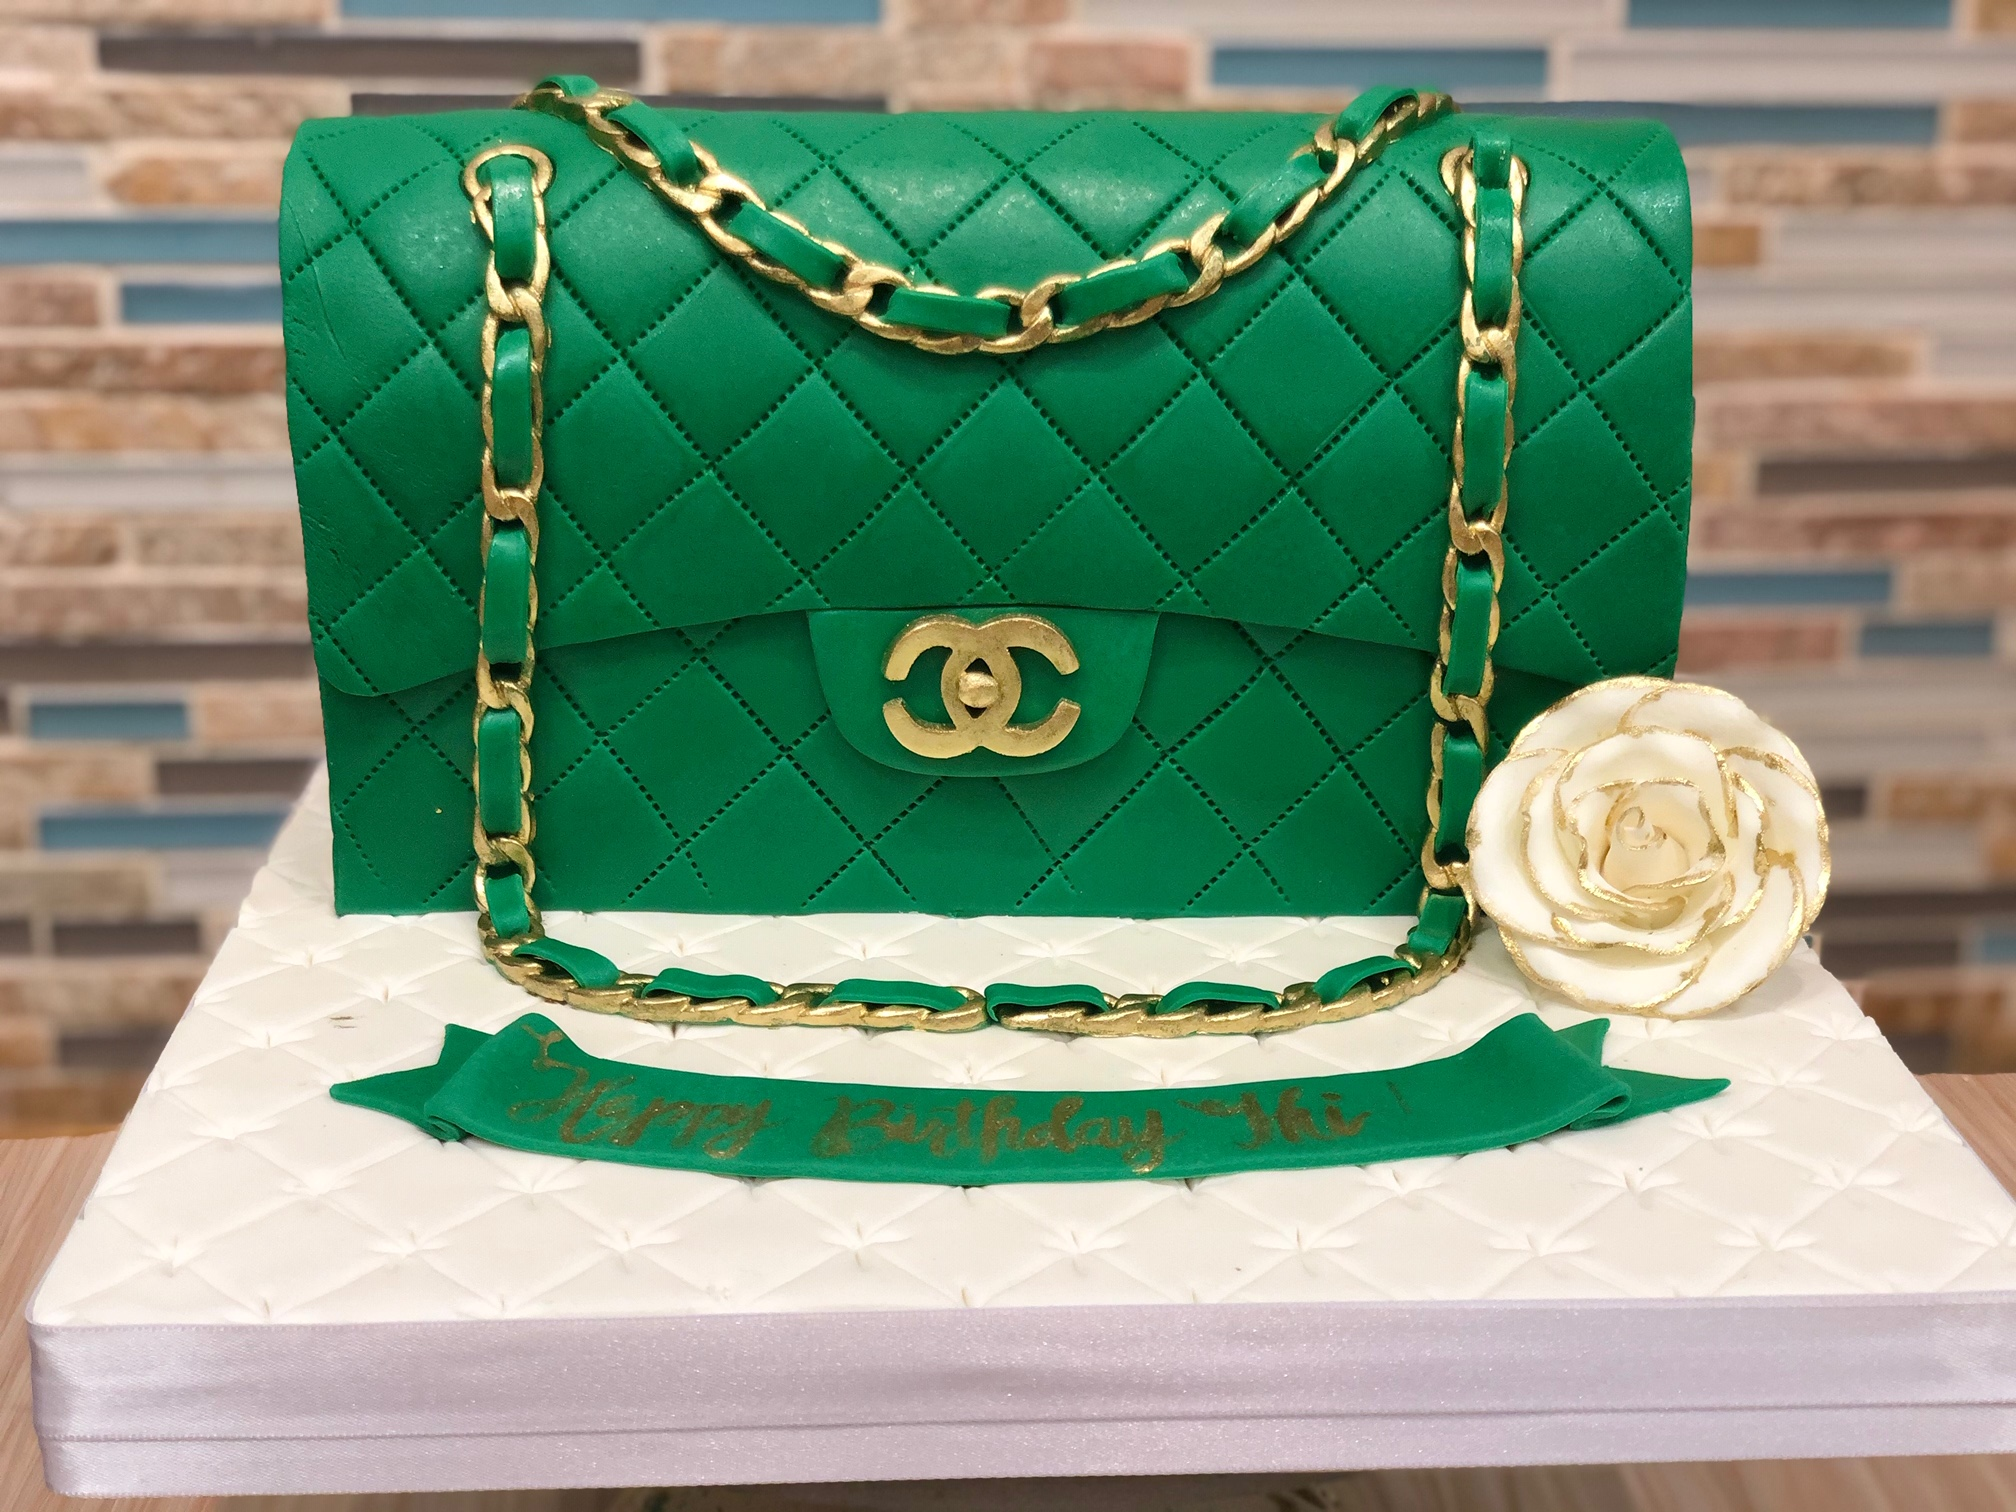 Emerald Chanel Purse Cake